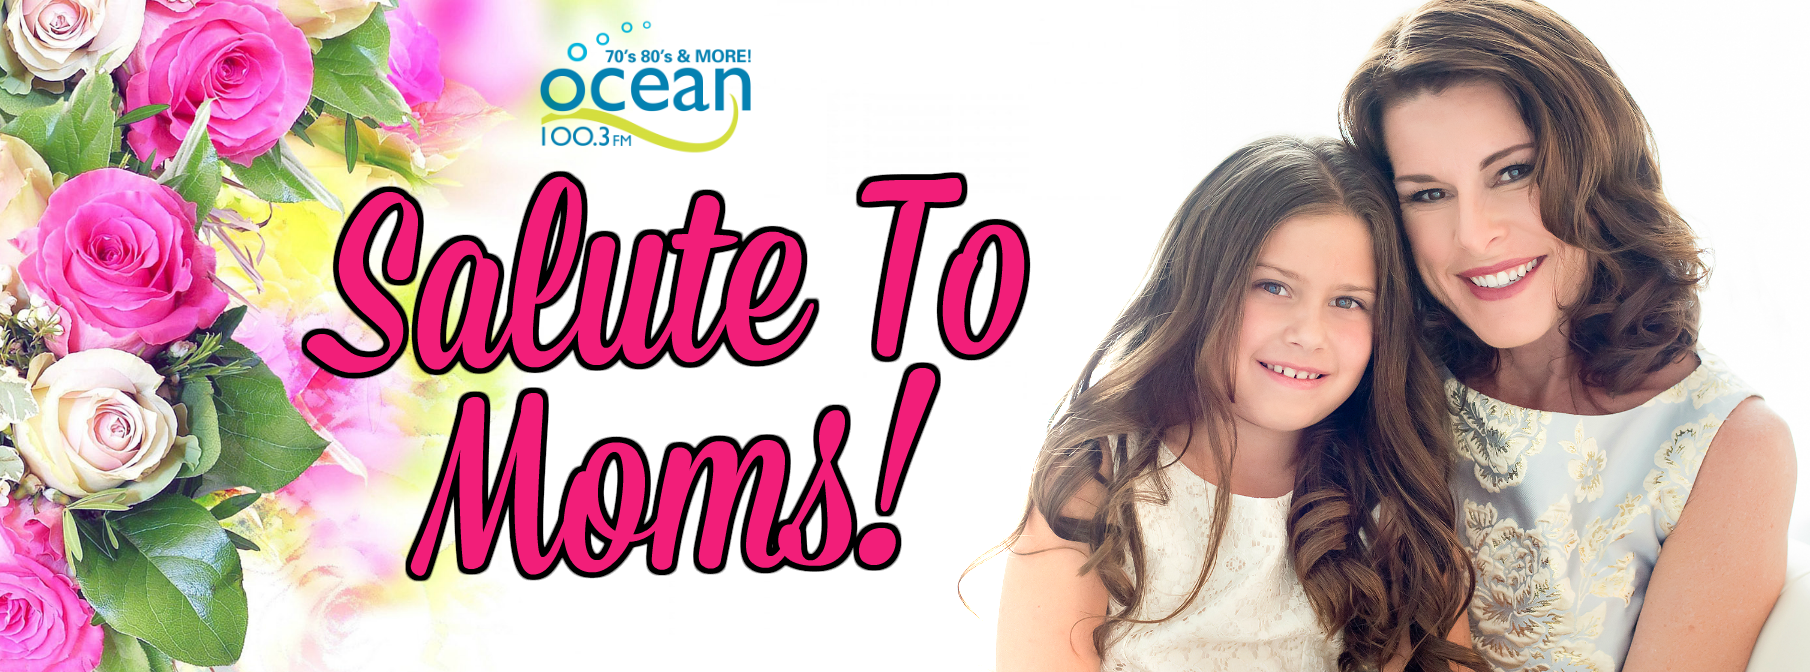 Feature: http://www.ocean100.com/salute-to-moms/